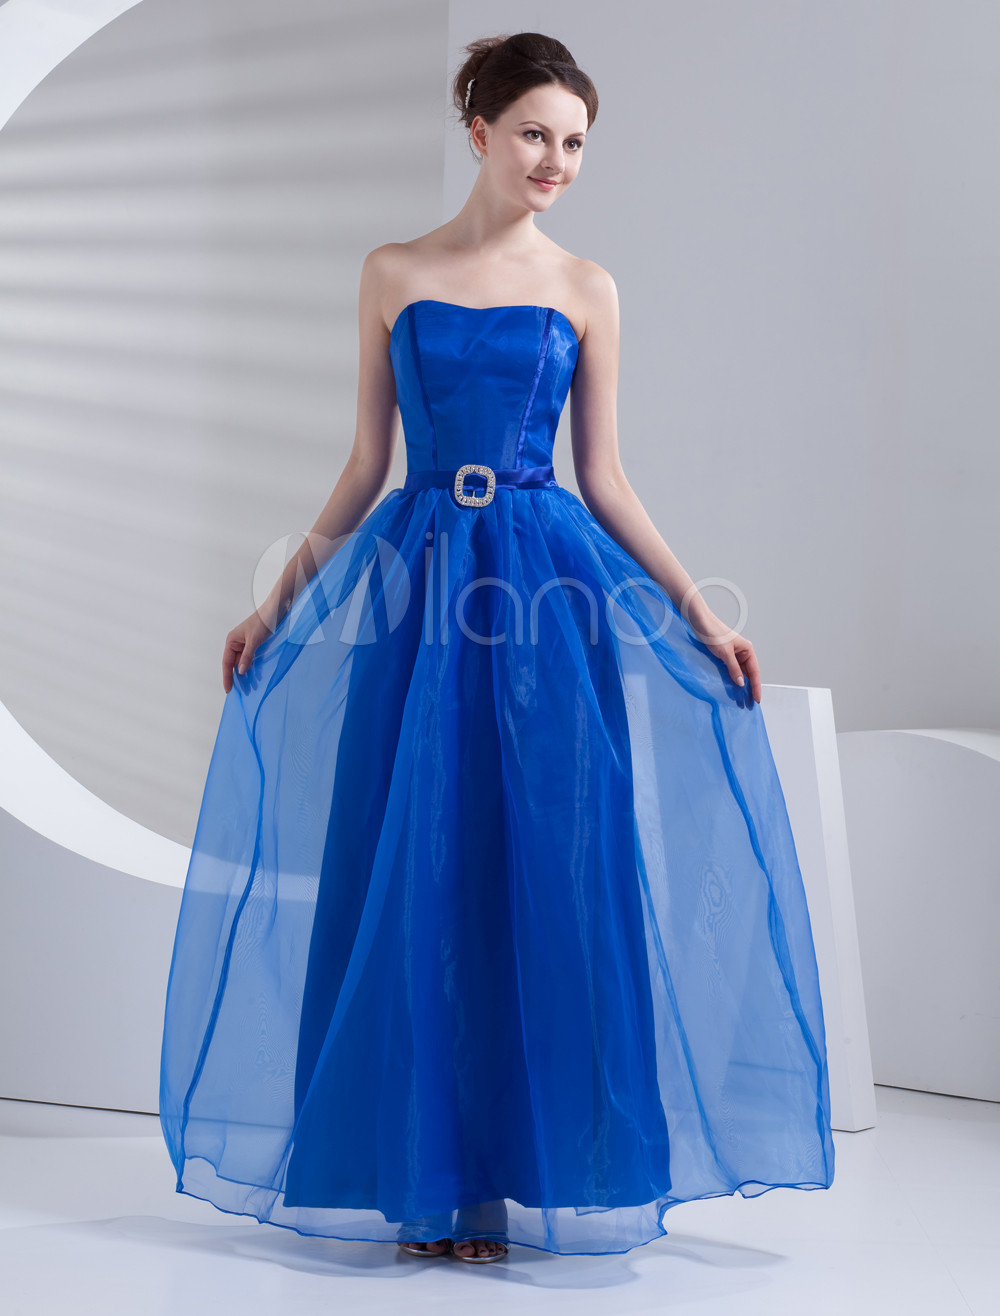 Wonderful Dark Blue Strapless A-line Maxi Gauze Bridesmaids Dress